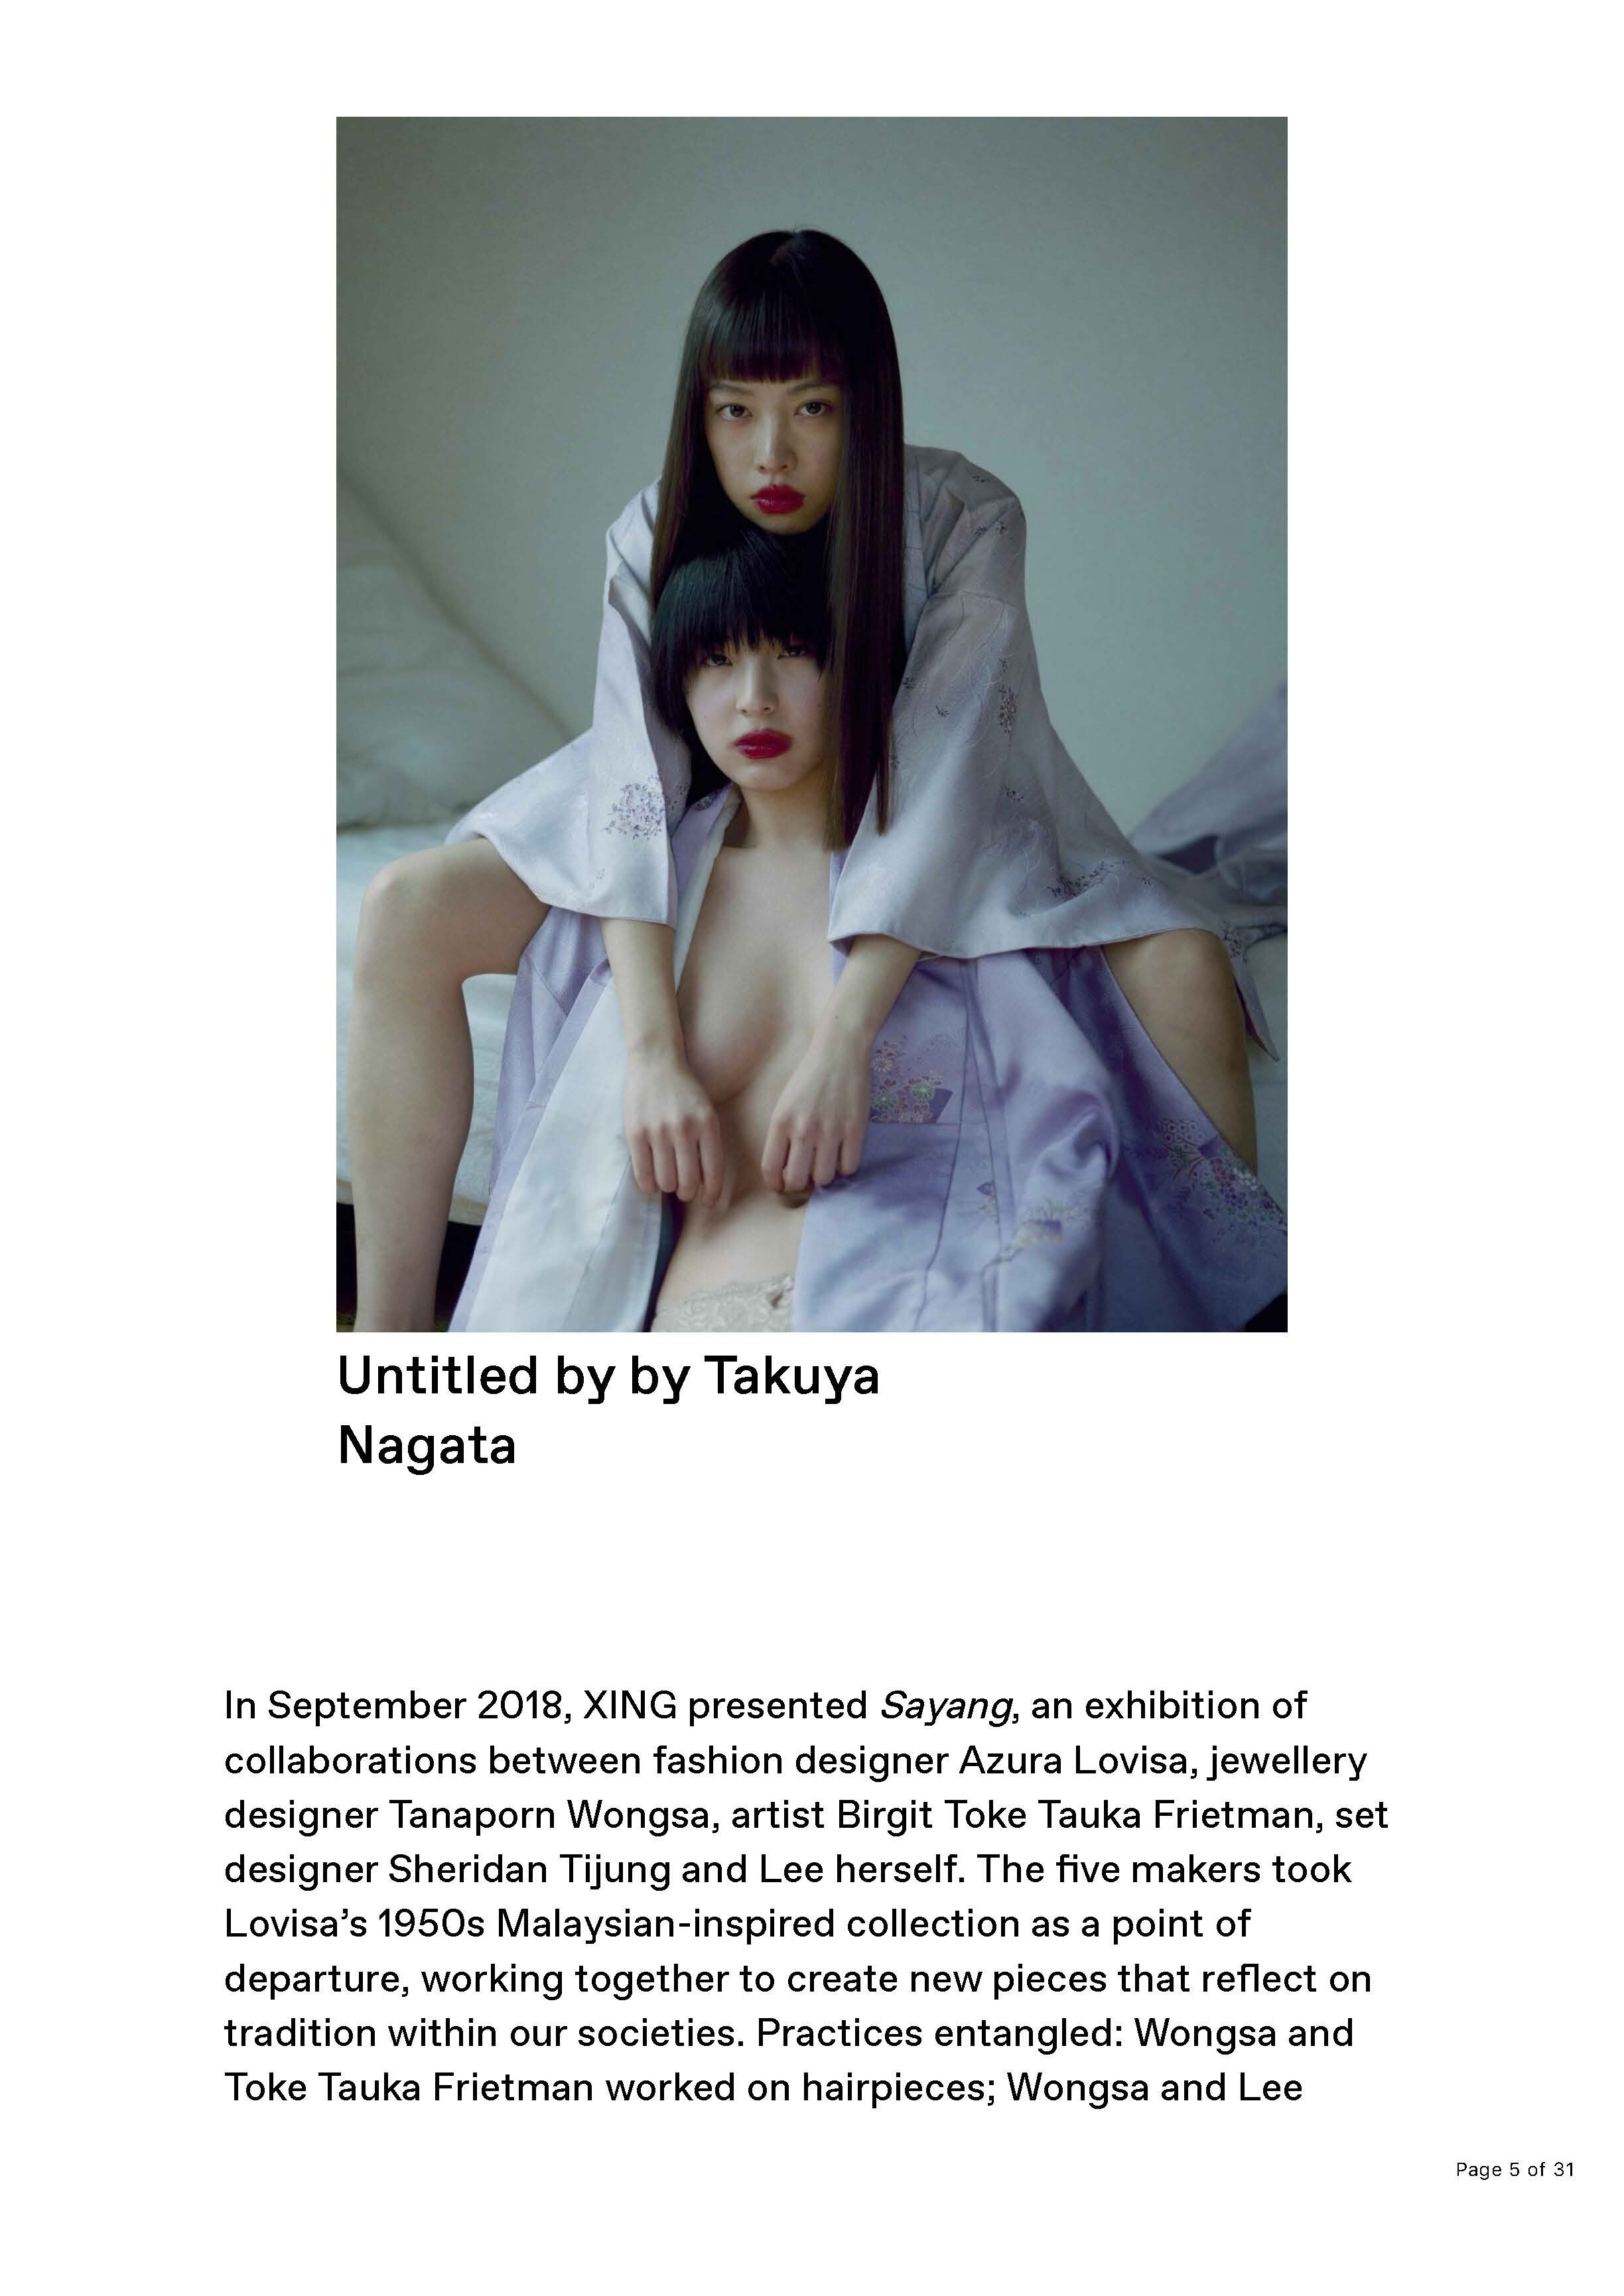 XING by Jade Barget, Unseen Amsterdam 2019, A.I. Gallery. Elizabeth Gabrielle Lee. News _Page_05.jpg